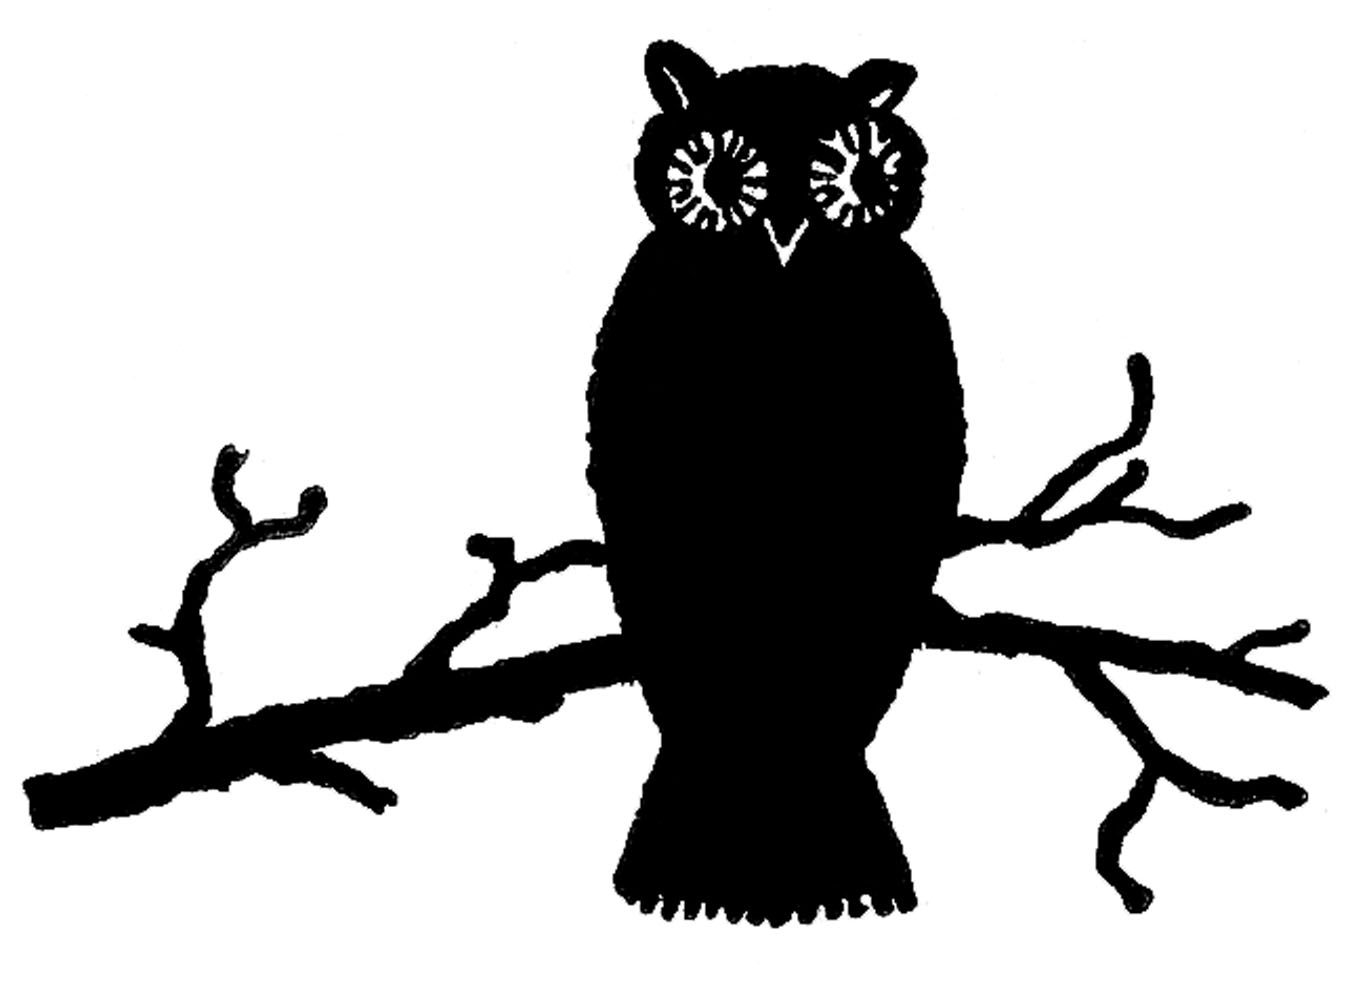 Vintage Halloween Clip Art - Cute Owl Silhouette - The Graphics Fairy